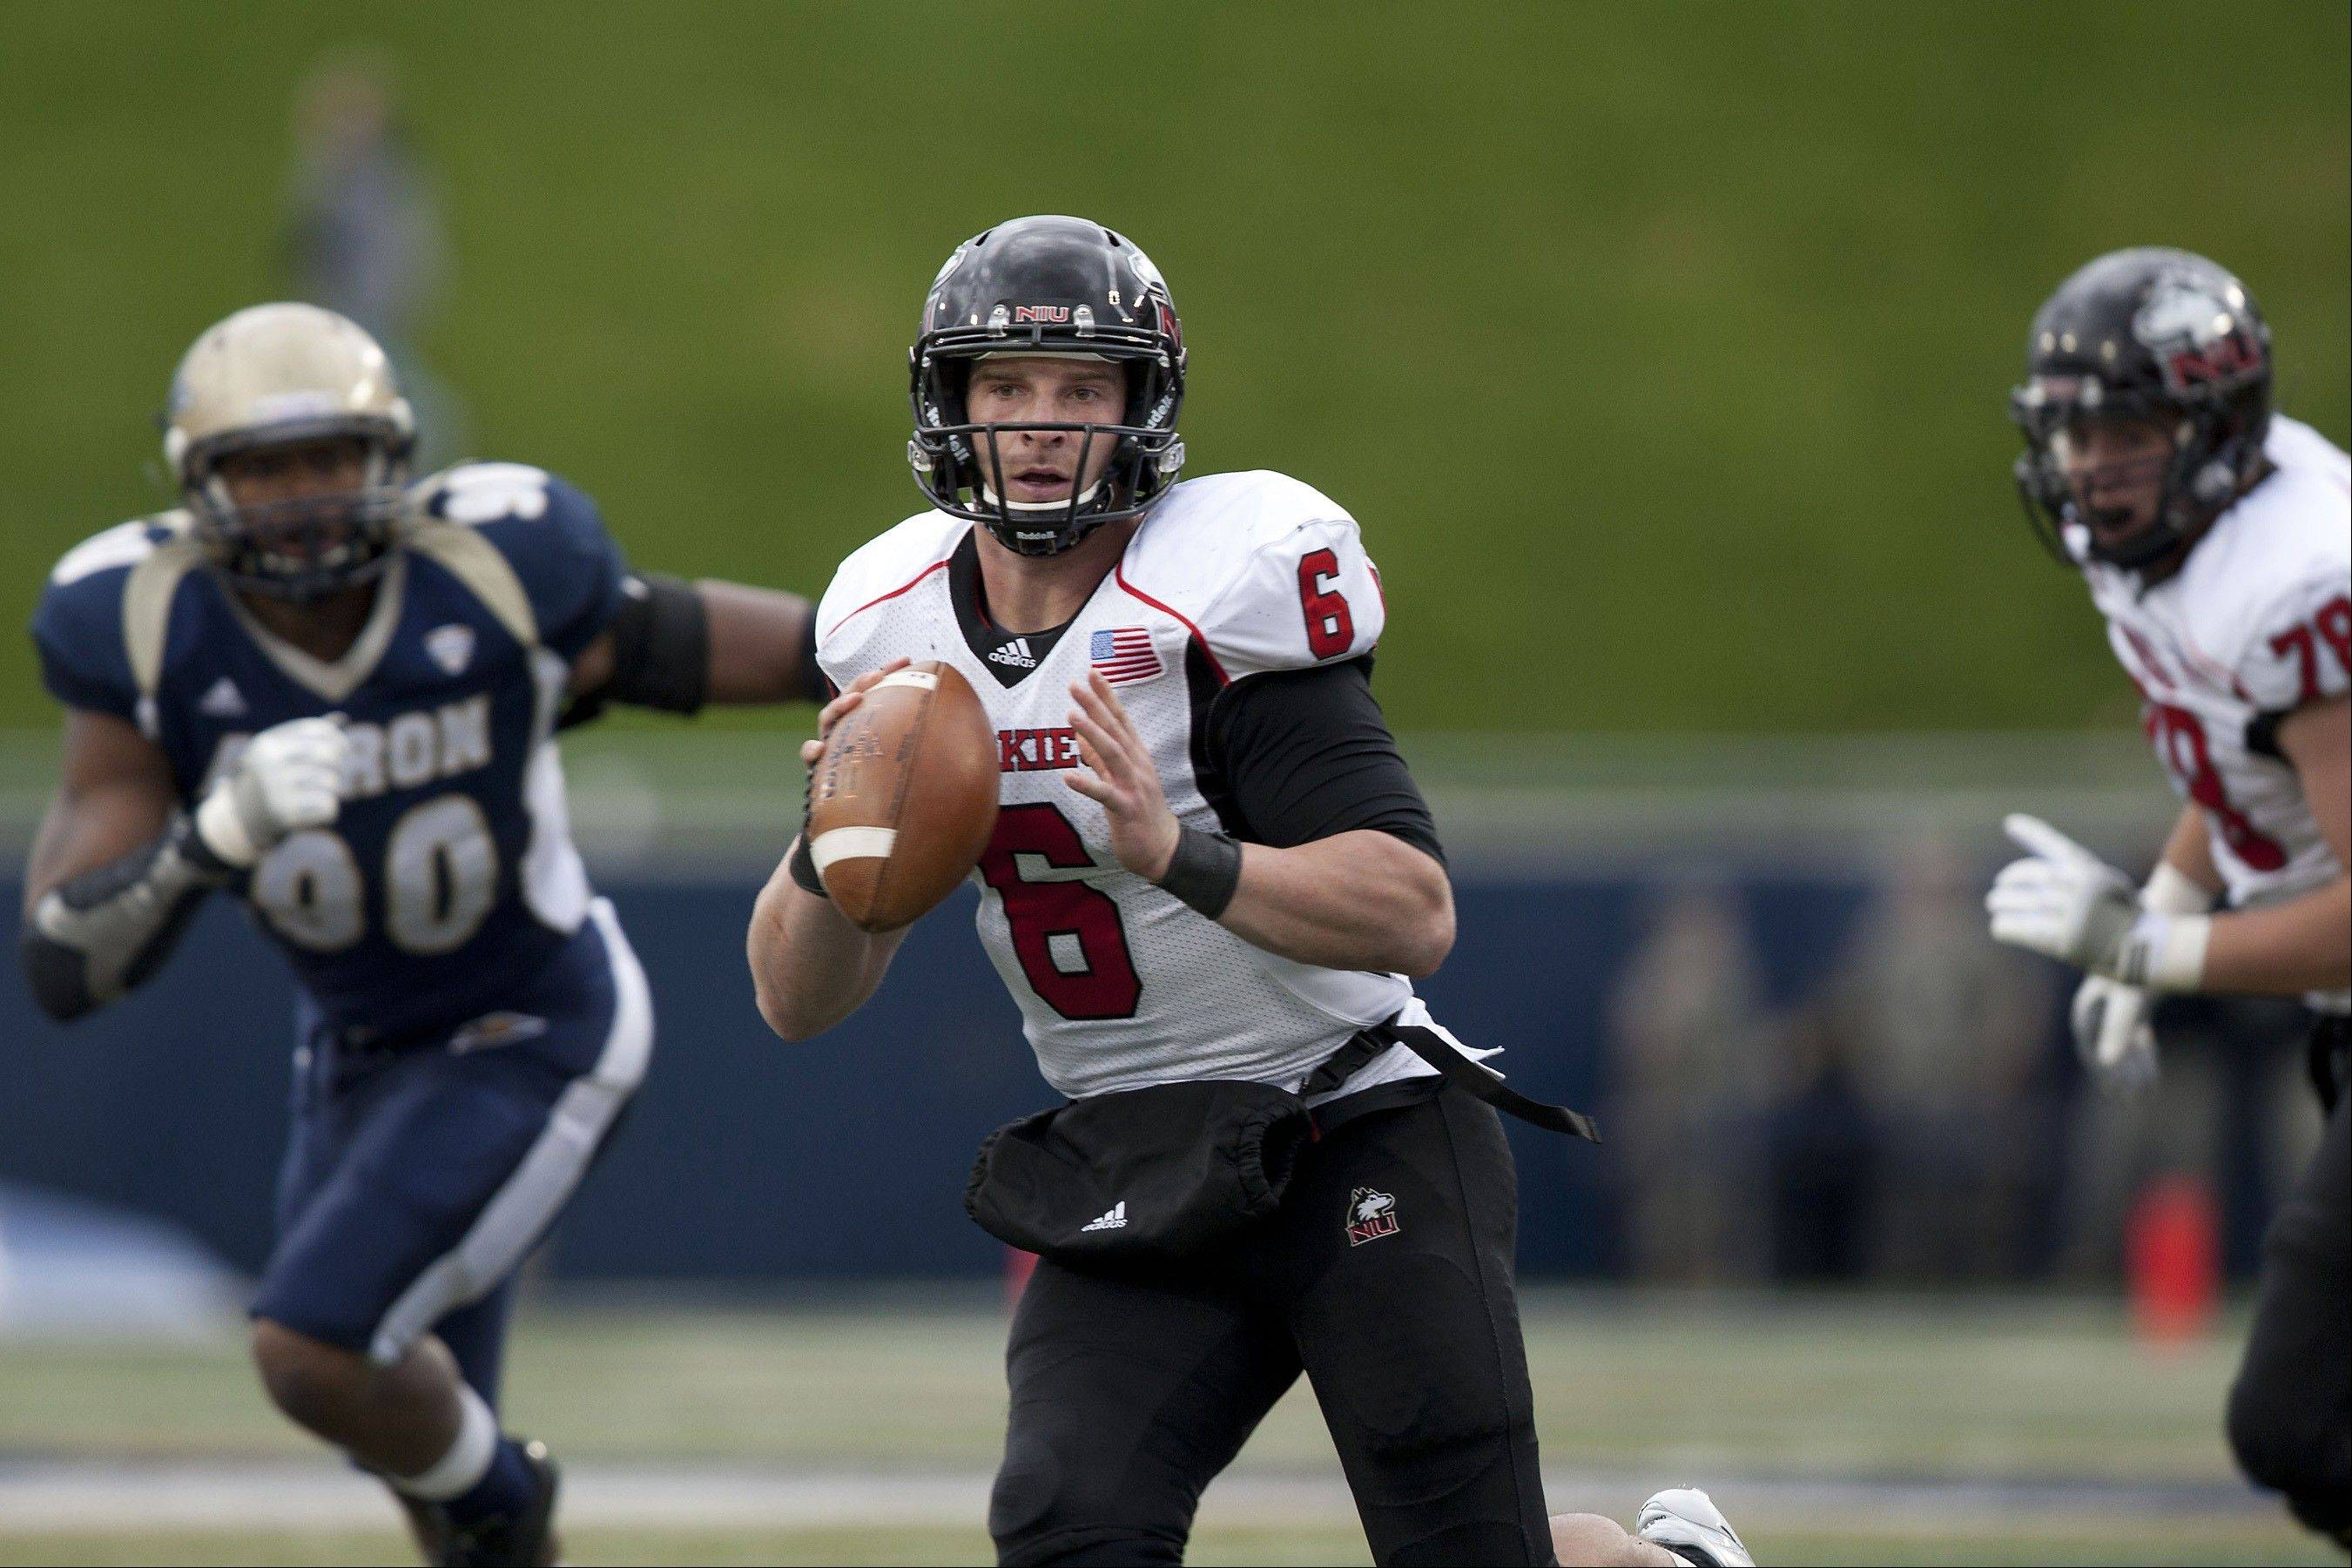 Northern Illinois quarterback Jordan Lynch is thrusting himself into the Heisman vote conversation by leading the nation in total yards.